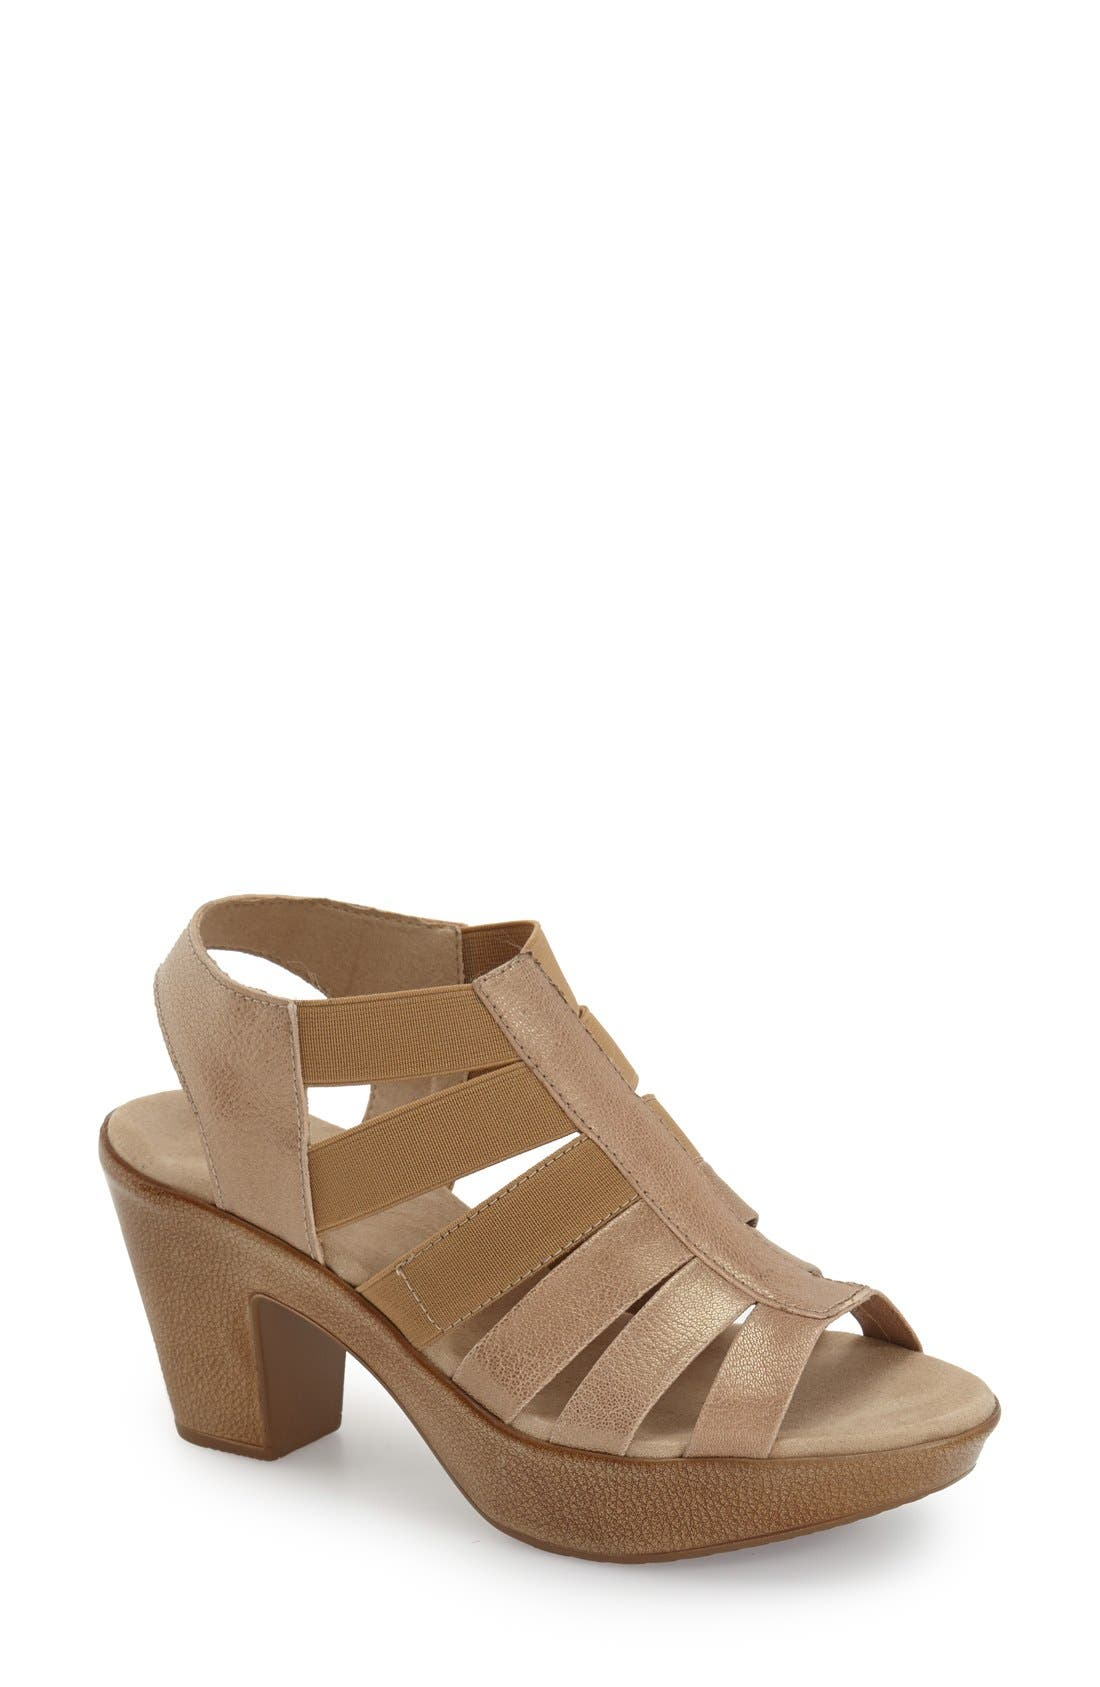 Munro 'Cookie' Slingback Sandal (Women)